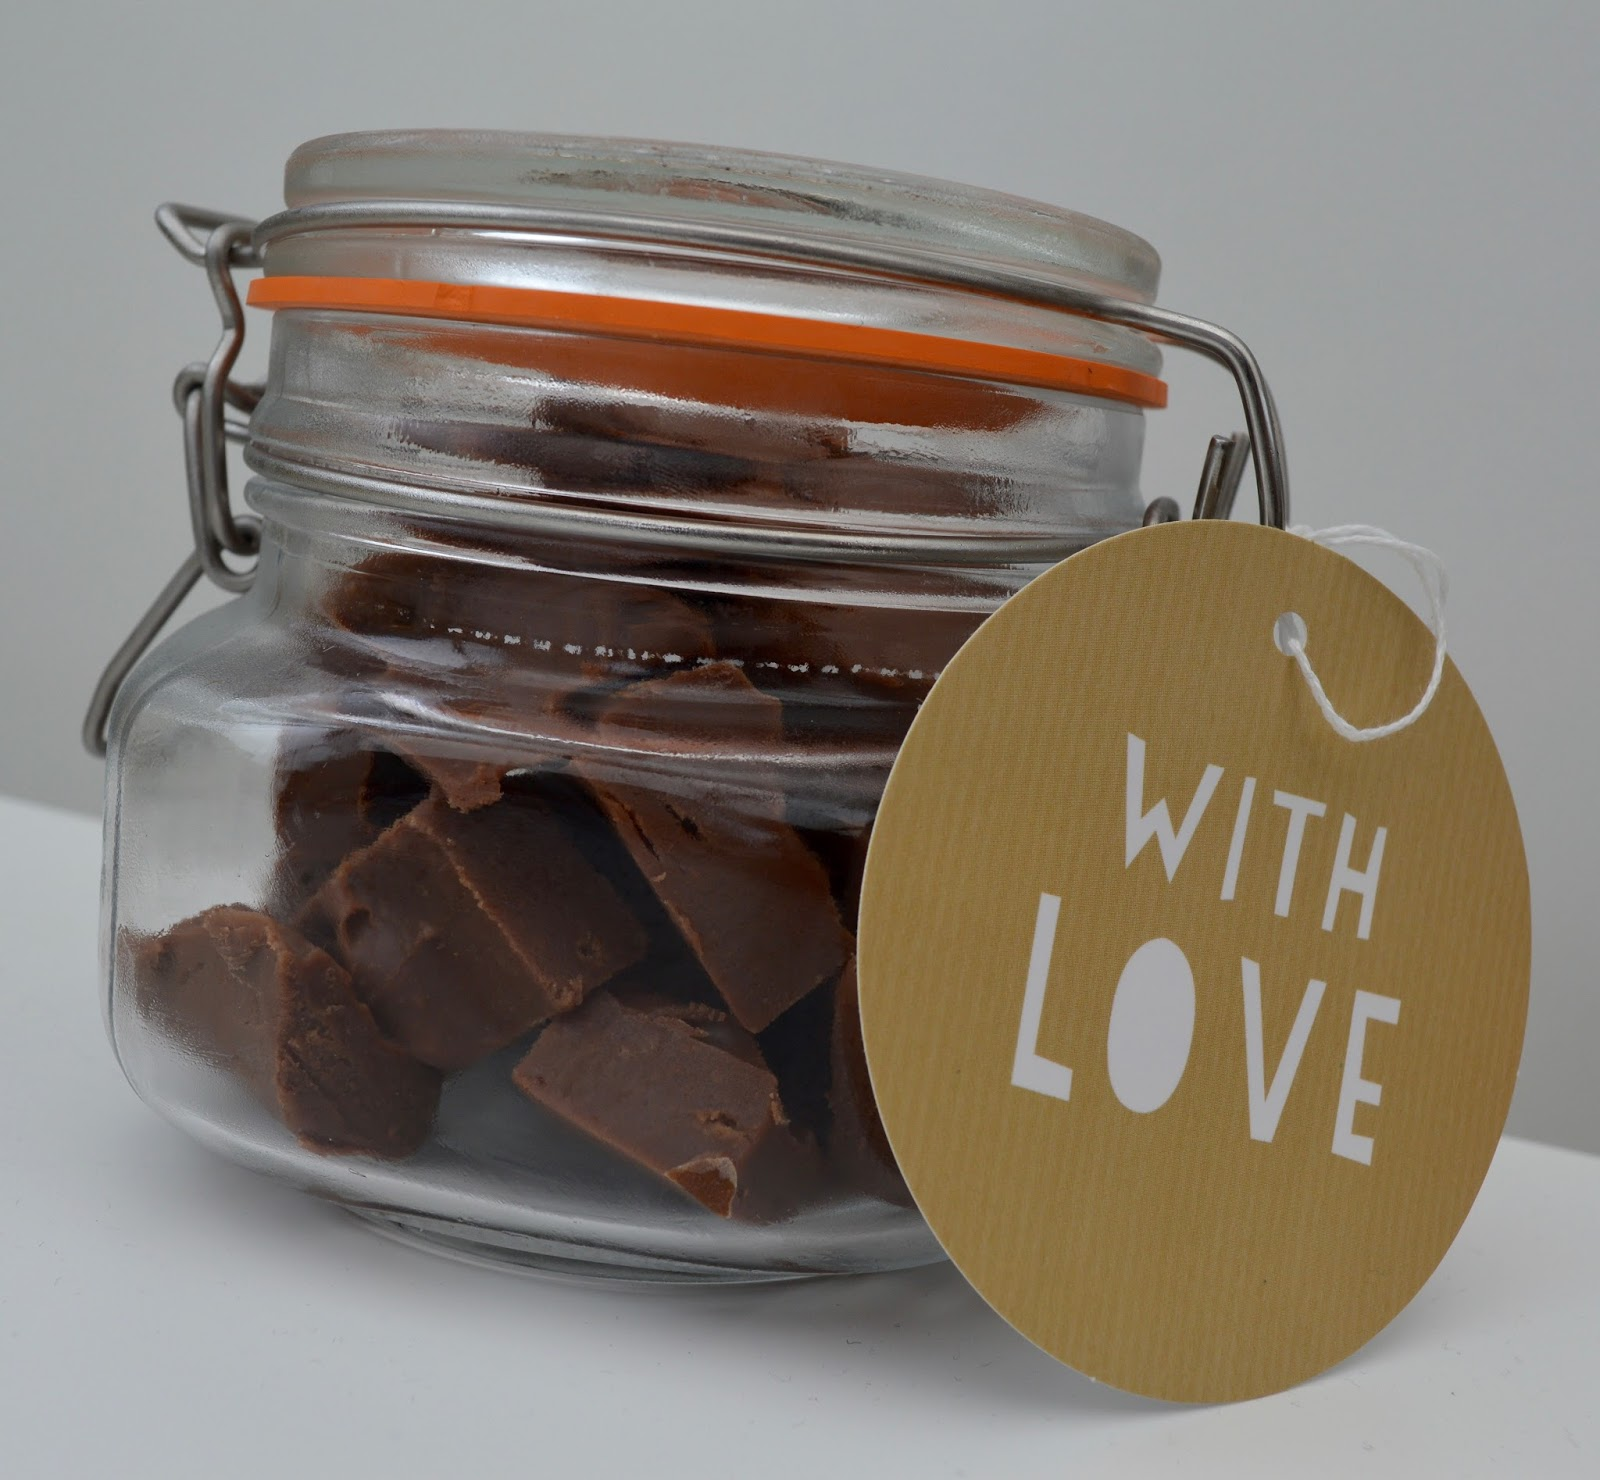 Terry's Chocolate Orange Slow Cooker Fudge Recipe - A Homemade & Edible Christmas Gift  - finished result presented in a mason jar with gift tag